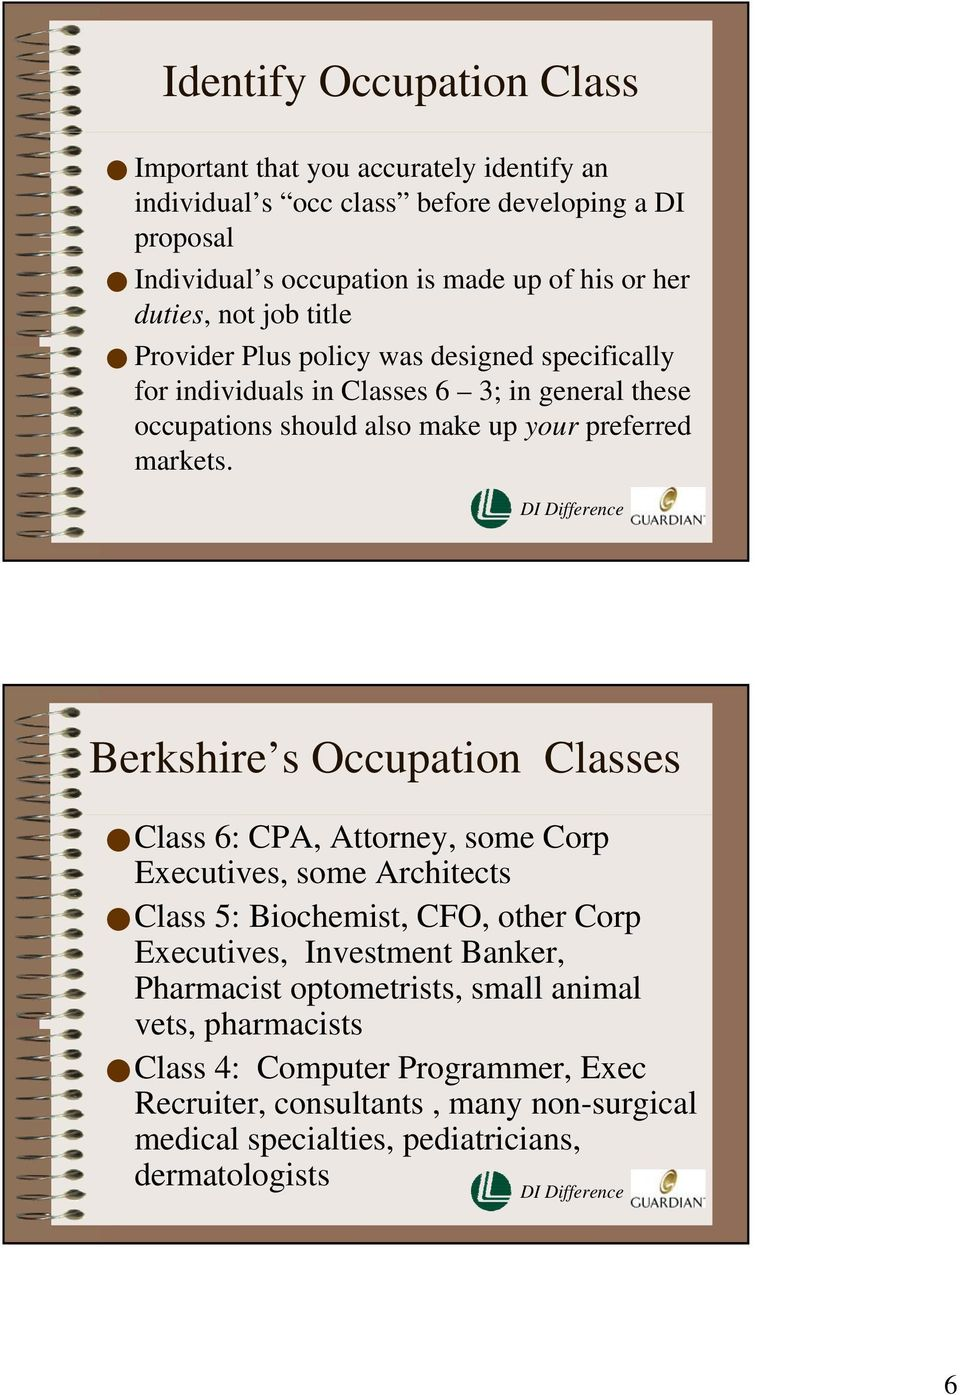 Berkshire s Occupation Classes Class 6: CPA, Attorney, some Corp Executives, some Architects Class 5: Biochemist, CFO, other Corp Executives, Investment Banker, Pharmacist